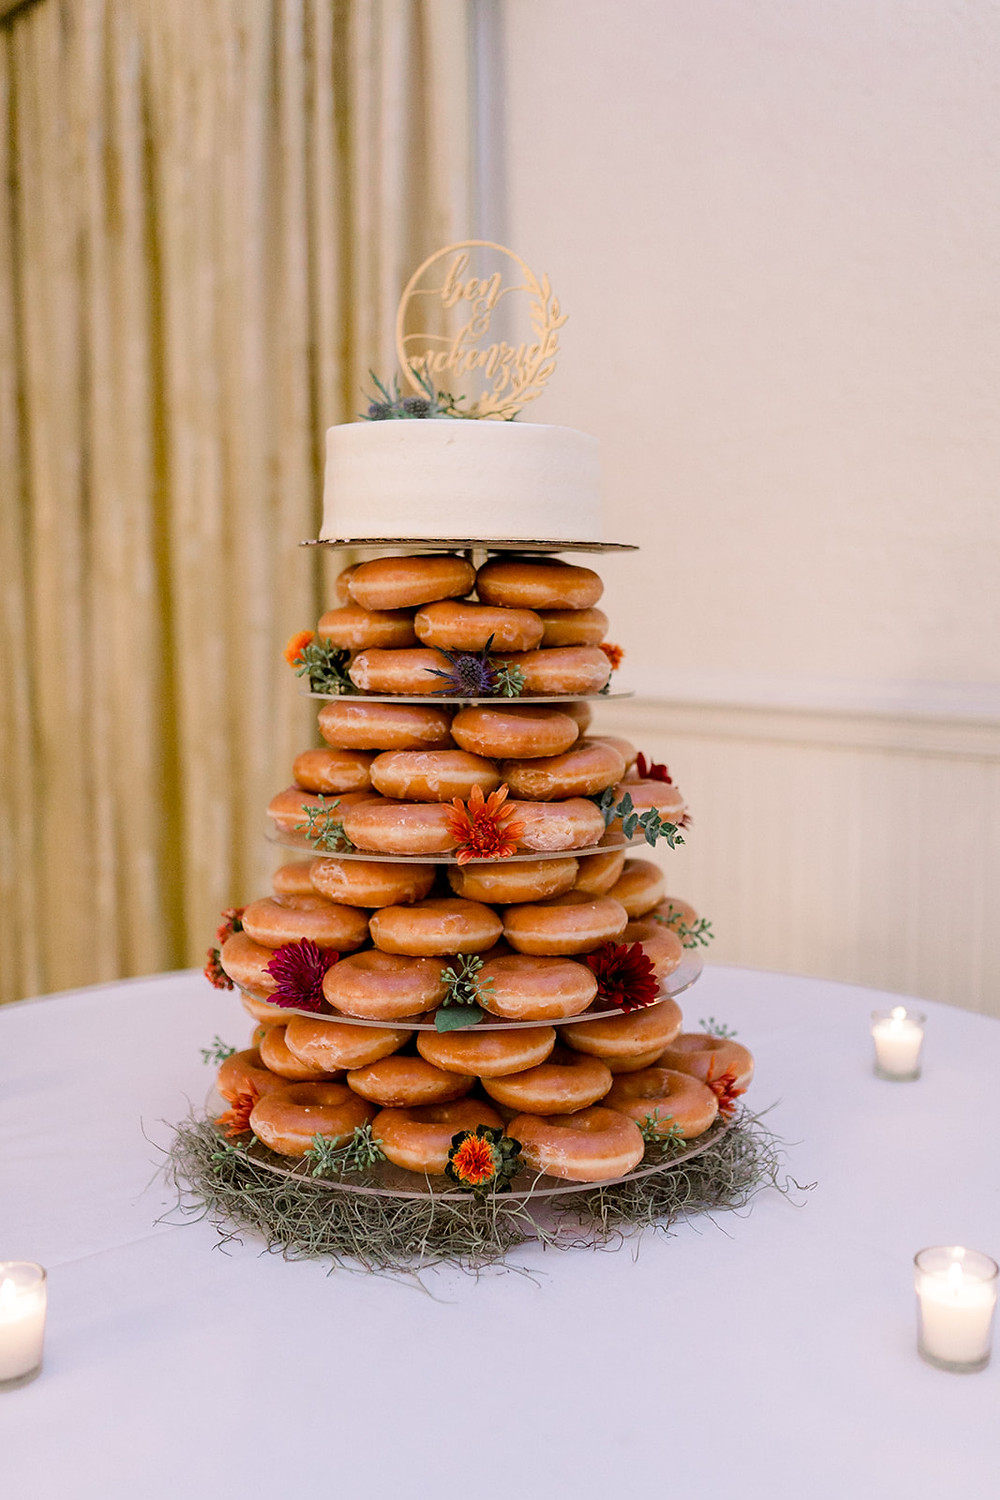 Donut tower with cake at wedding reception